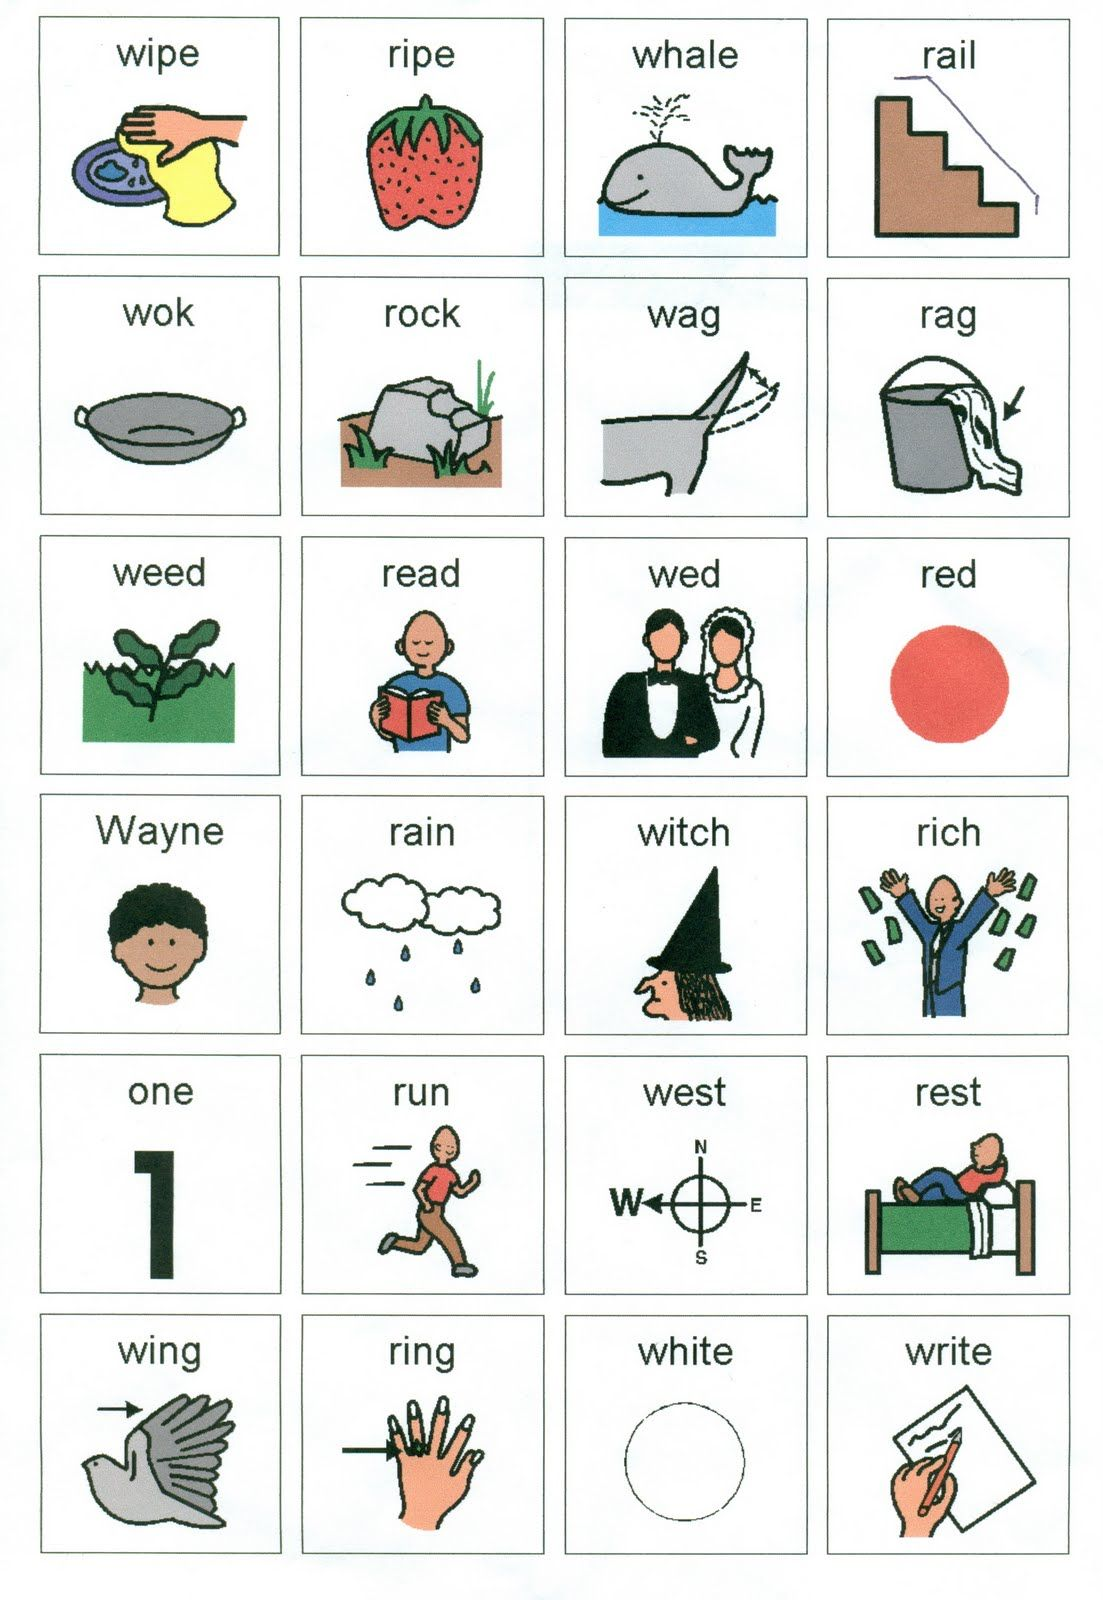 R And W Minimal Pairs Bingo